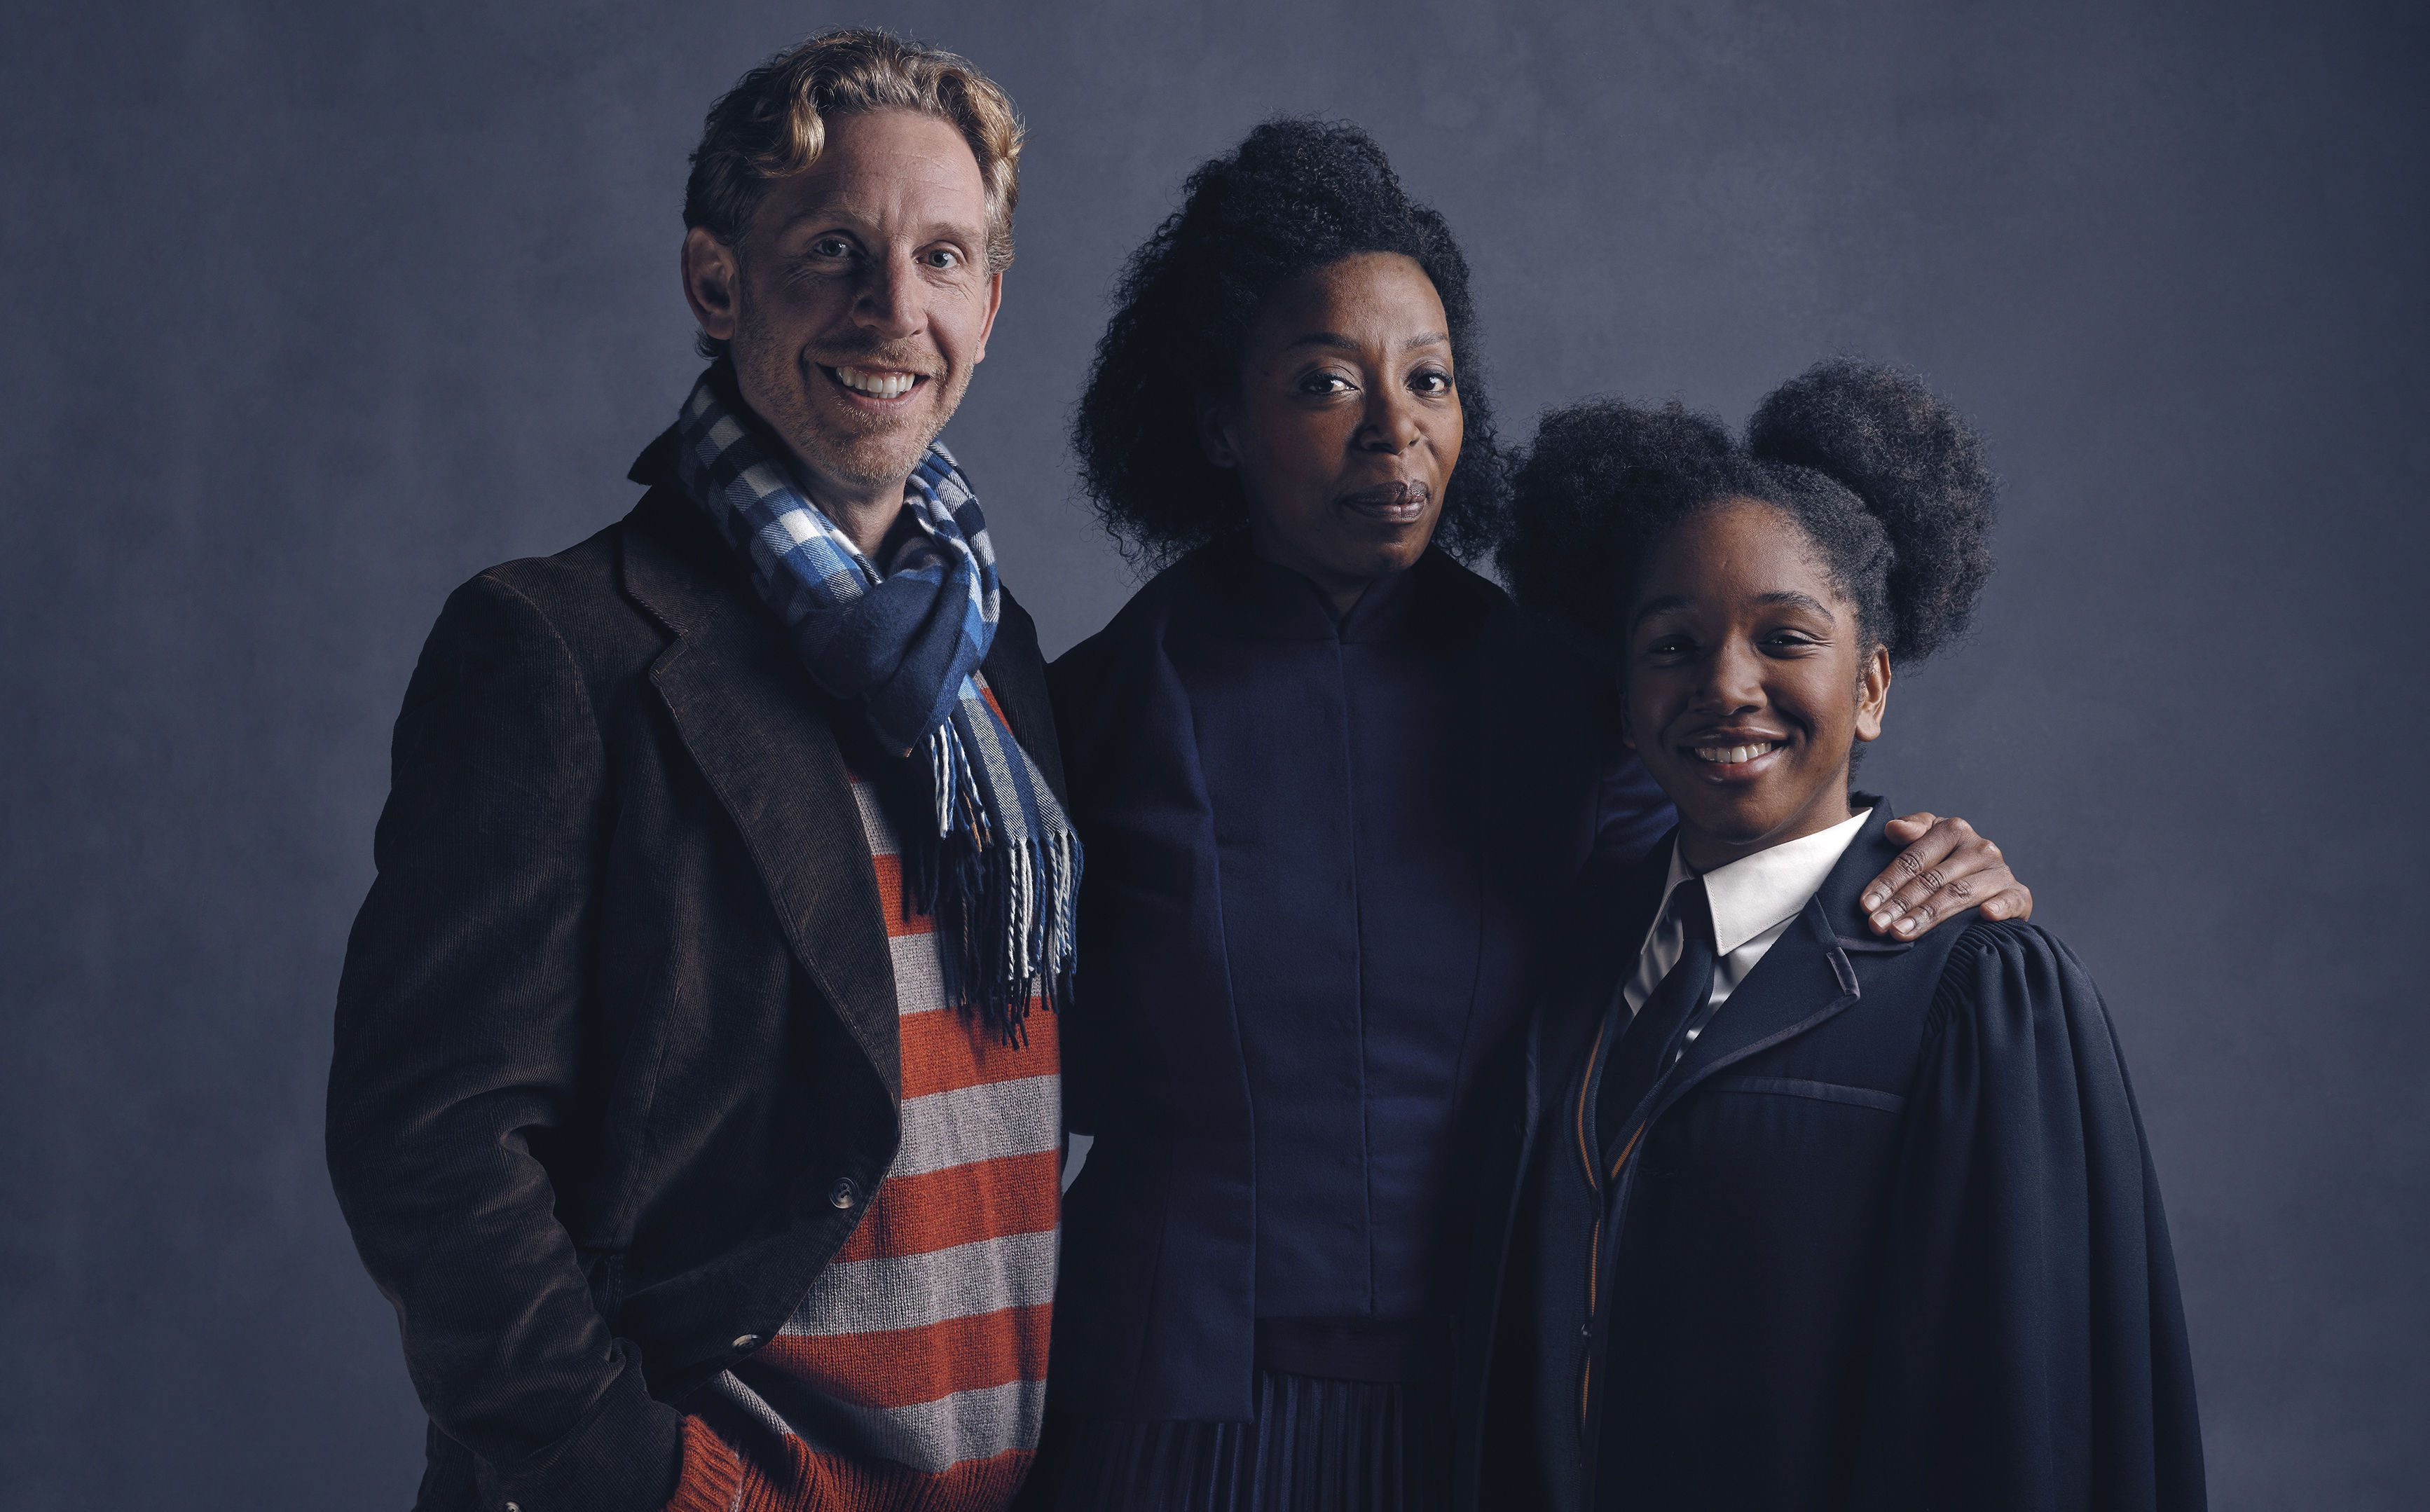 From left: Paul Thornley, Noma Dumezweni and Cherelle Skeete who will play Ron Weasley, Hermione Granger and Rose Granger-Weasley.